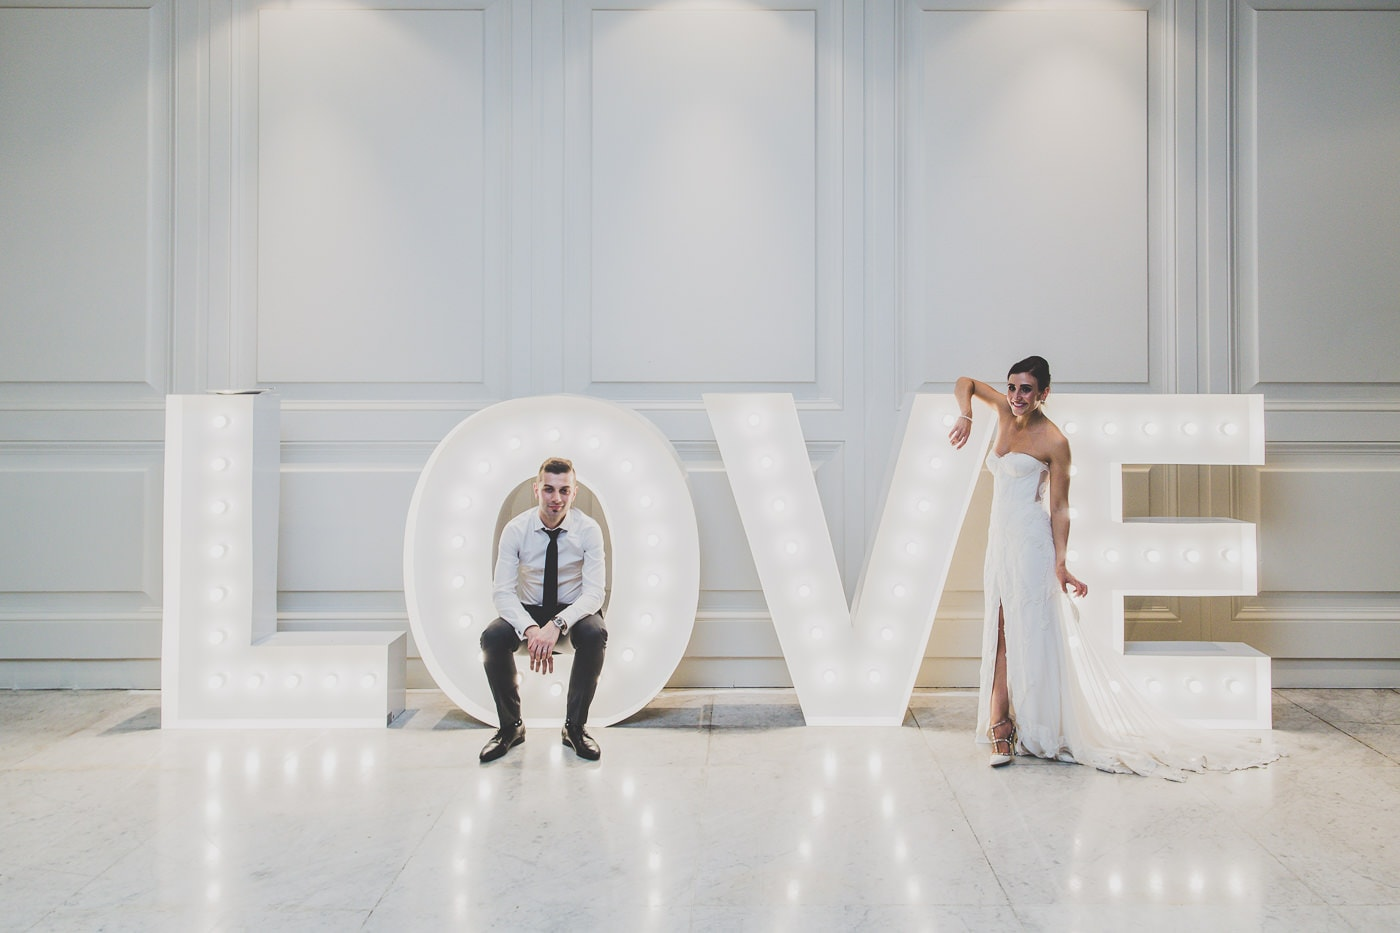 oversized illuminated love letters at melbourne wedding - wedding photography photoprops in melbourne